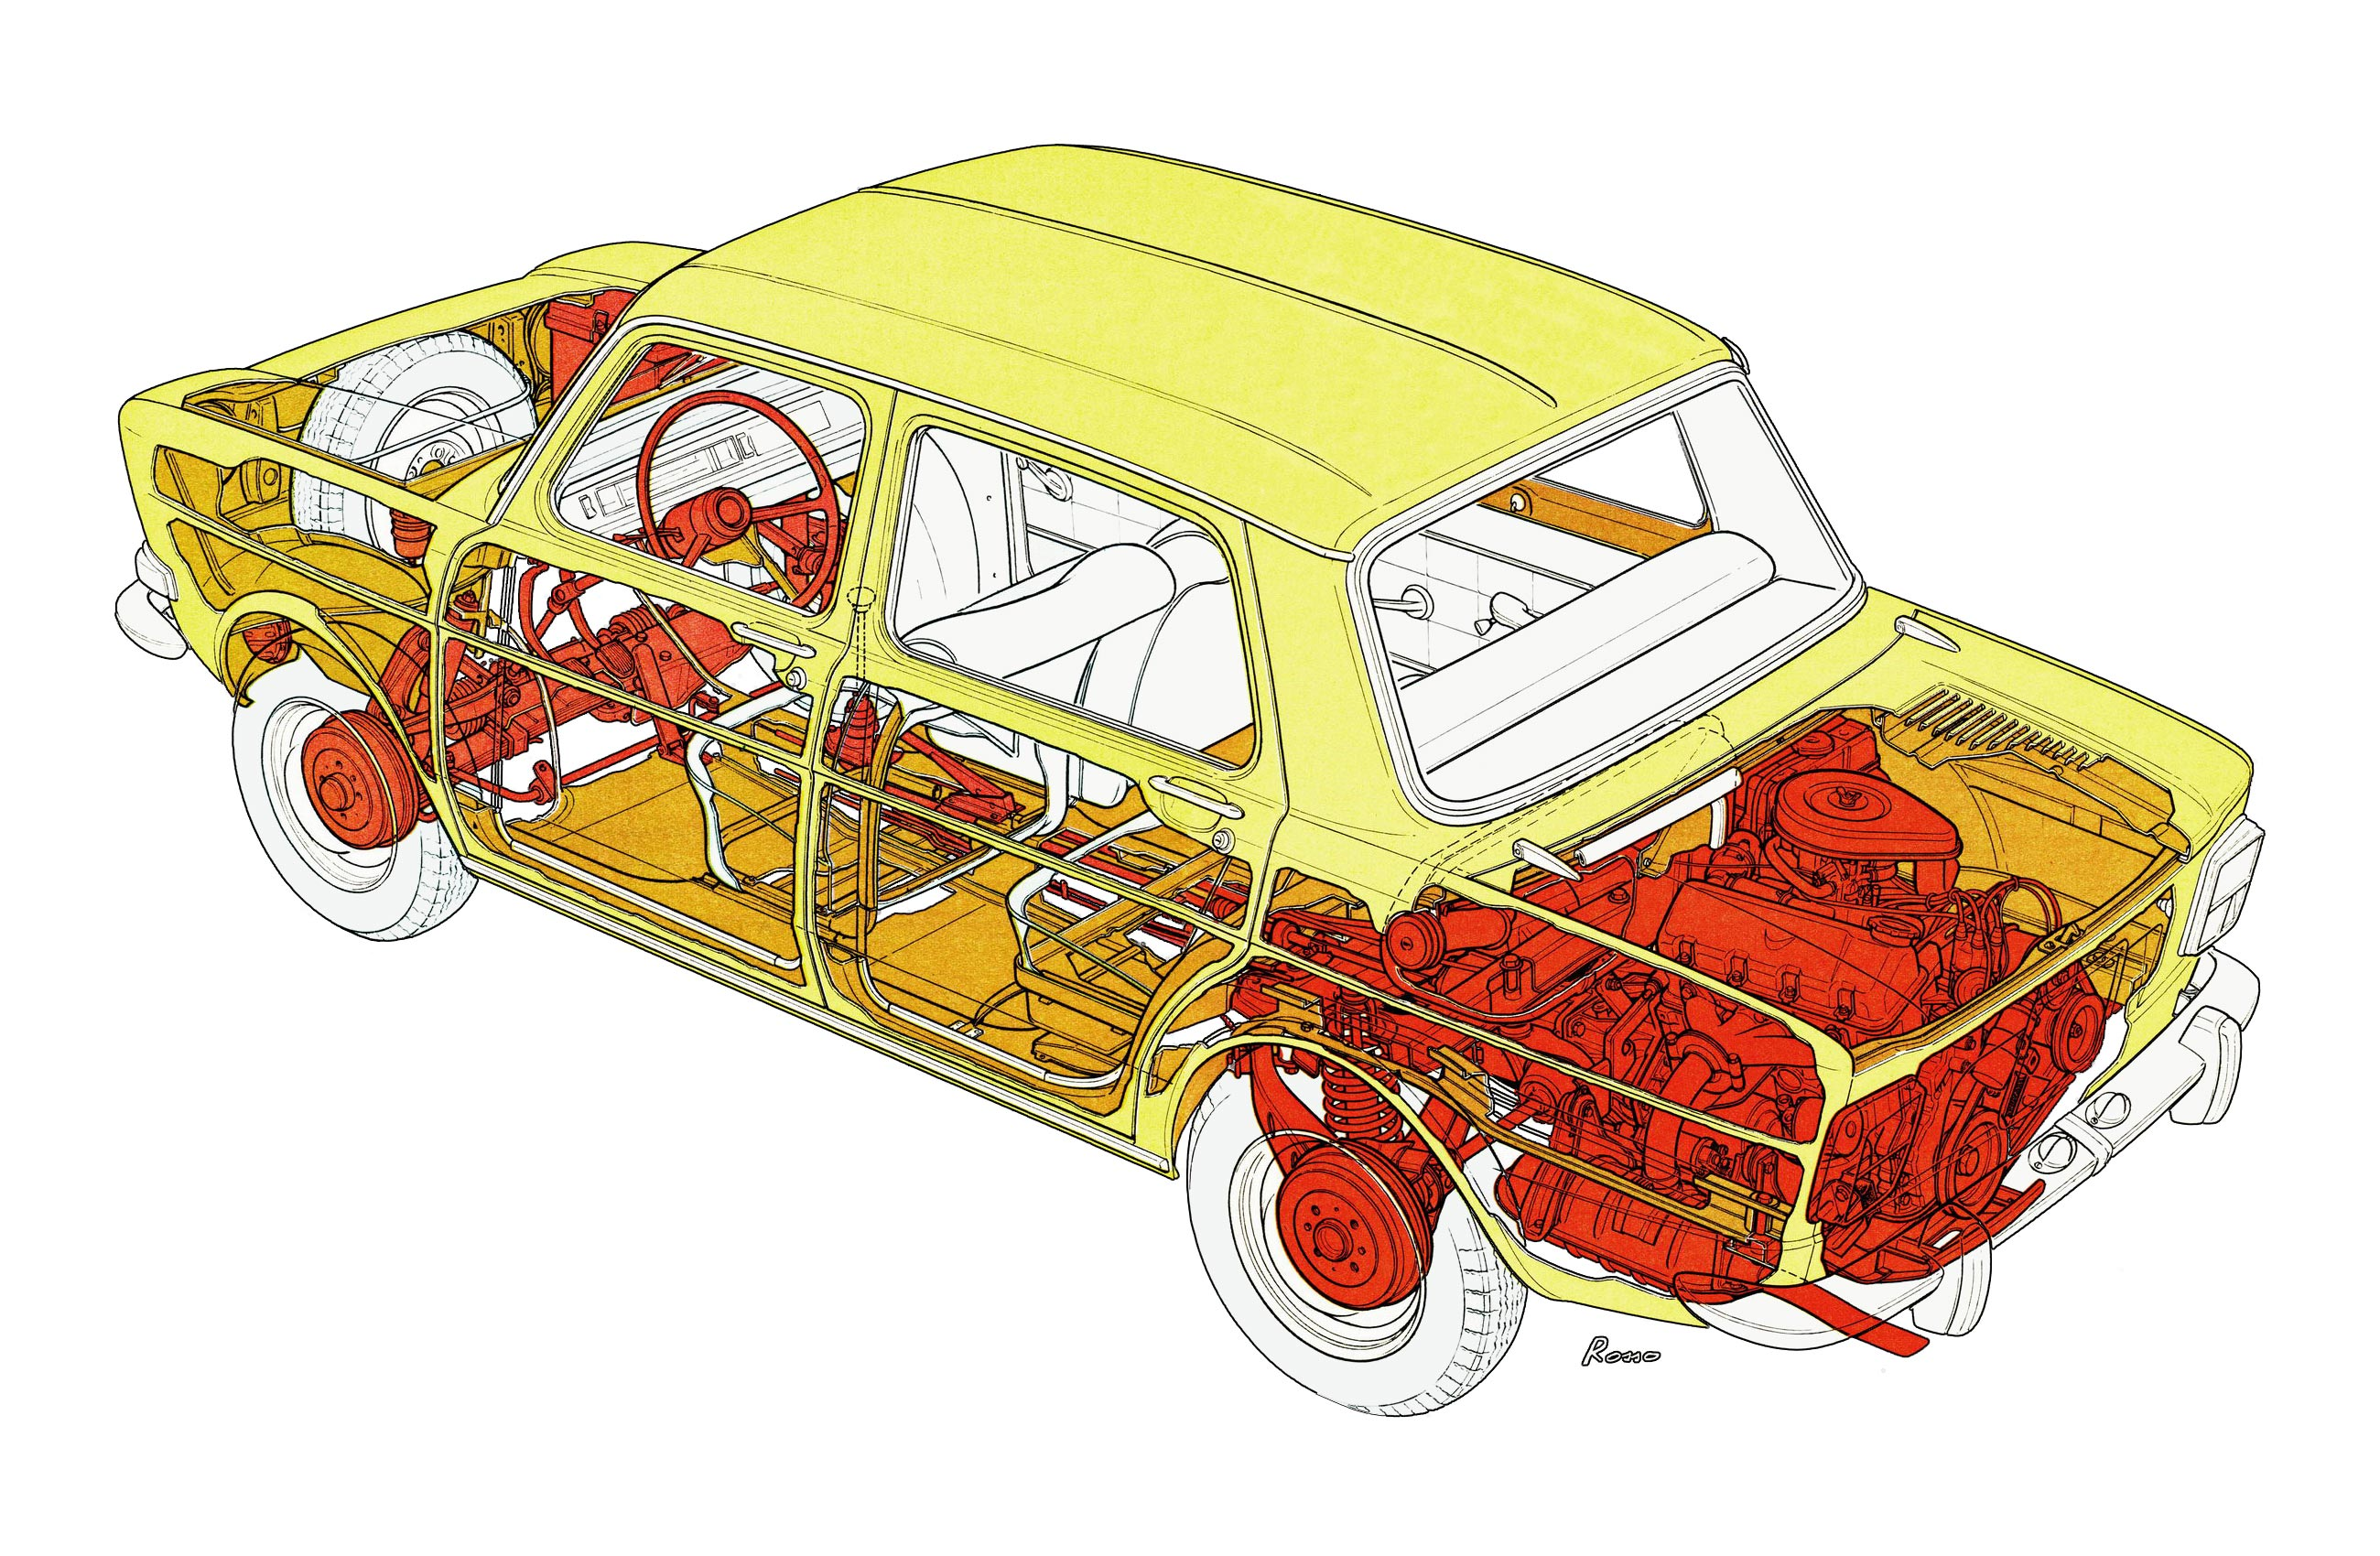 Simca 1000 cutaway drawing